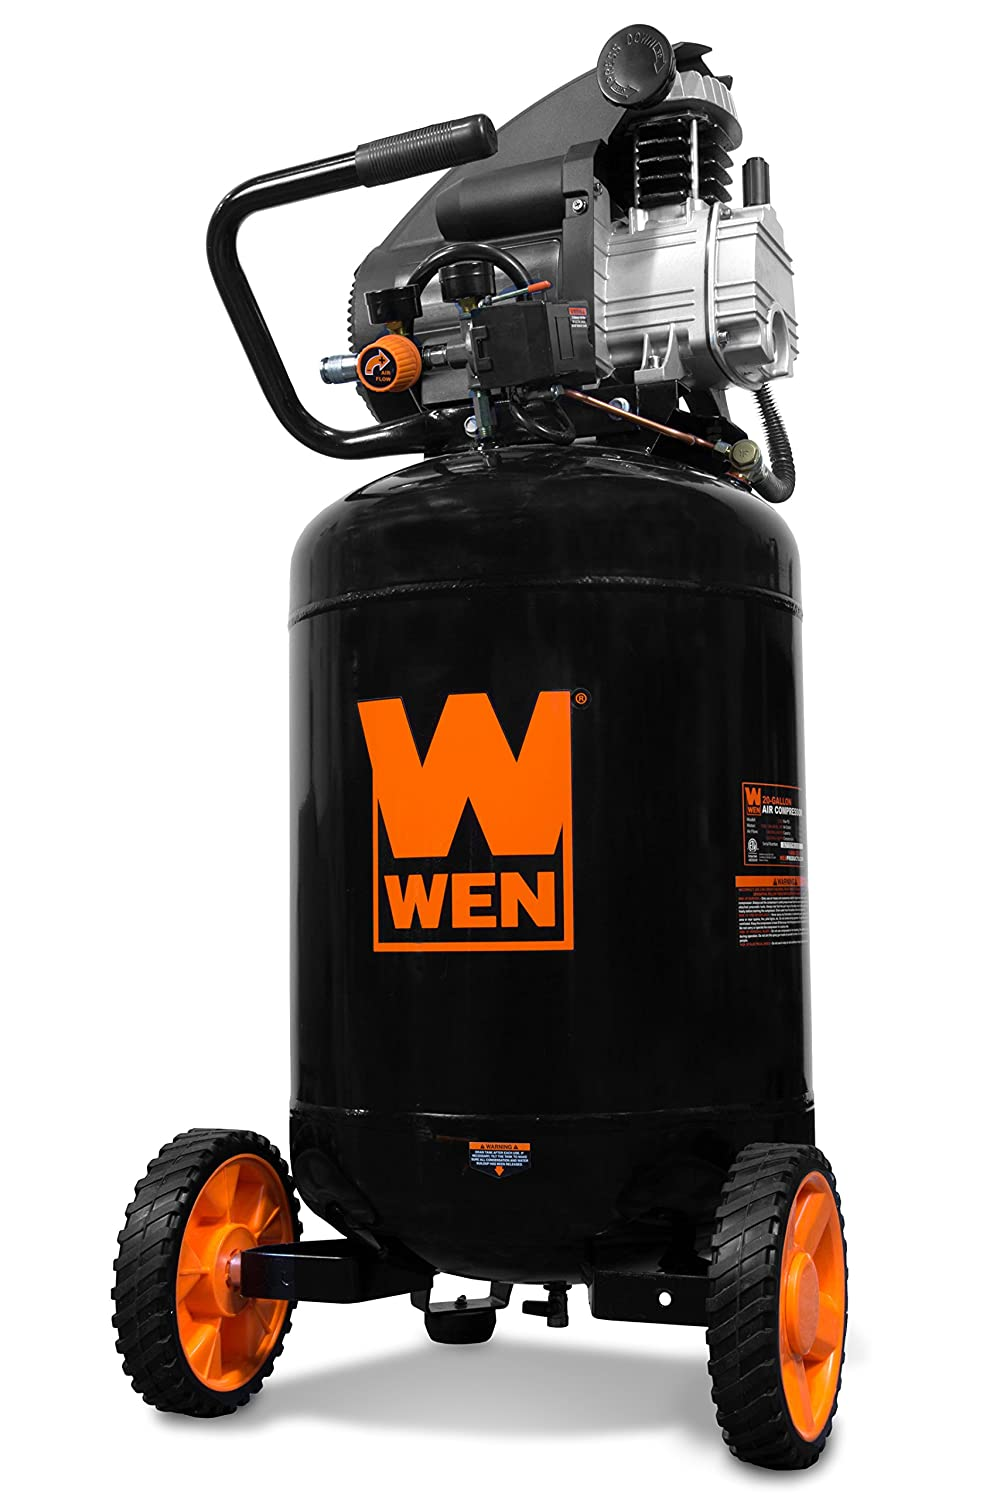 WEN Best Portable Air Compressor